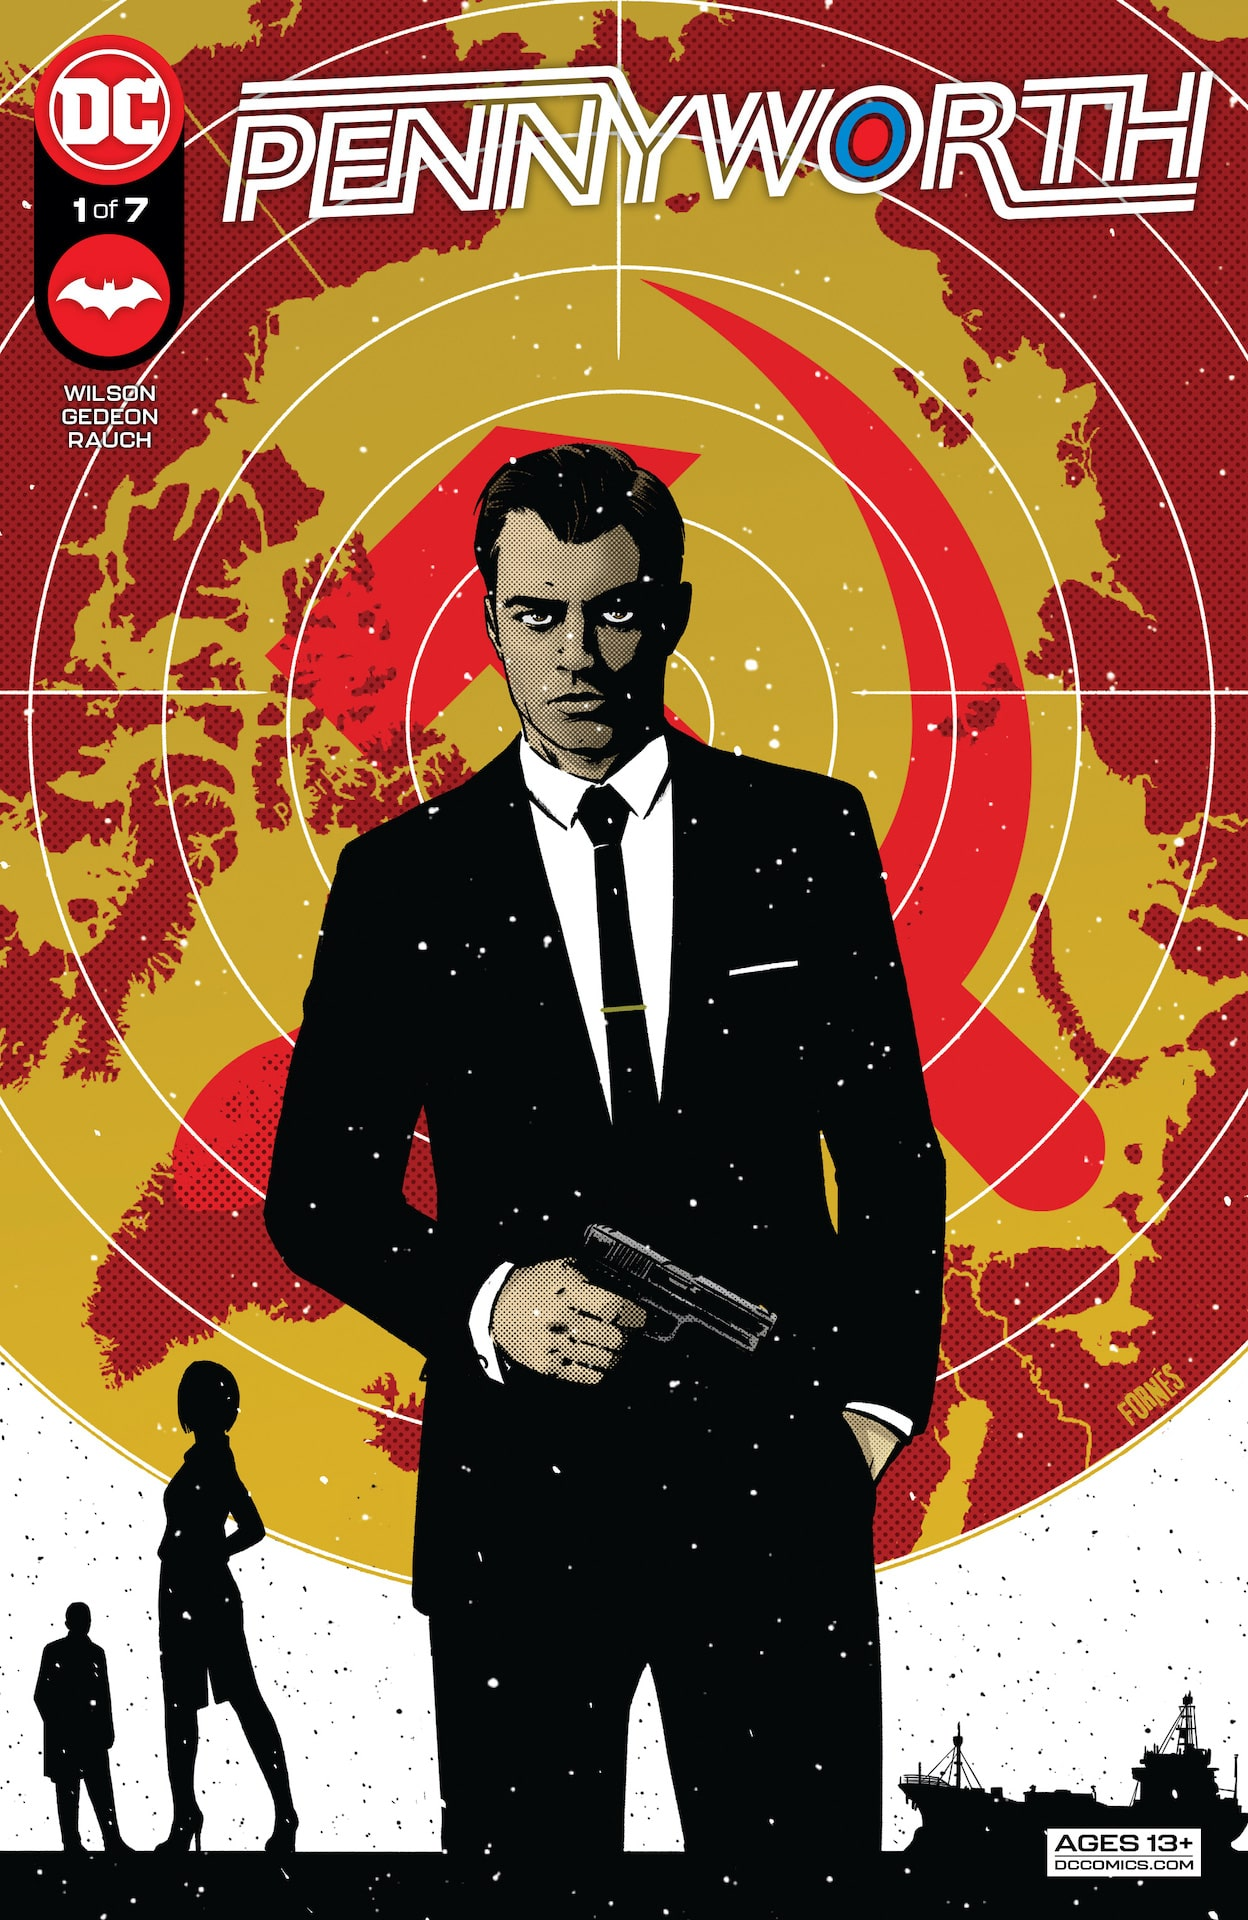 DC Preview: Pennyworth #1